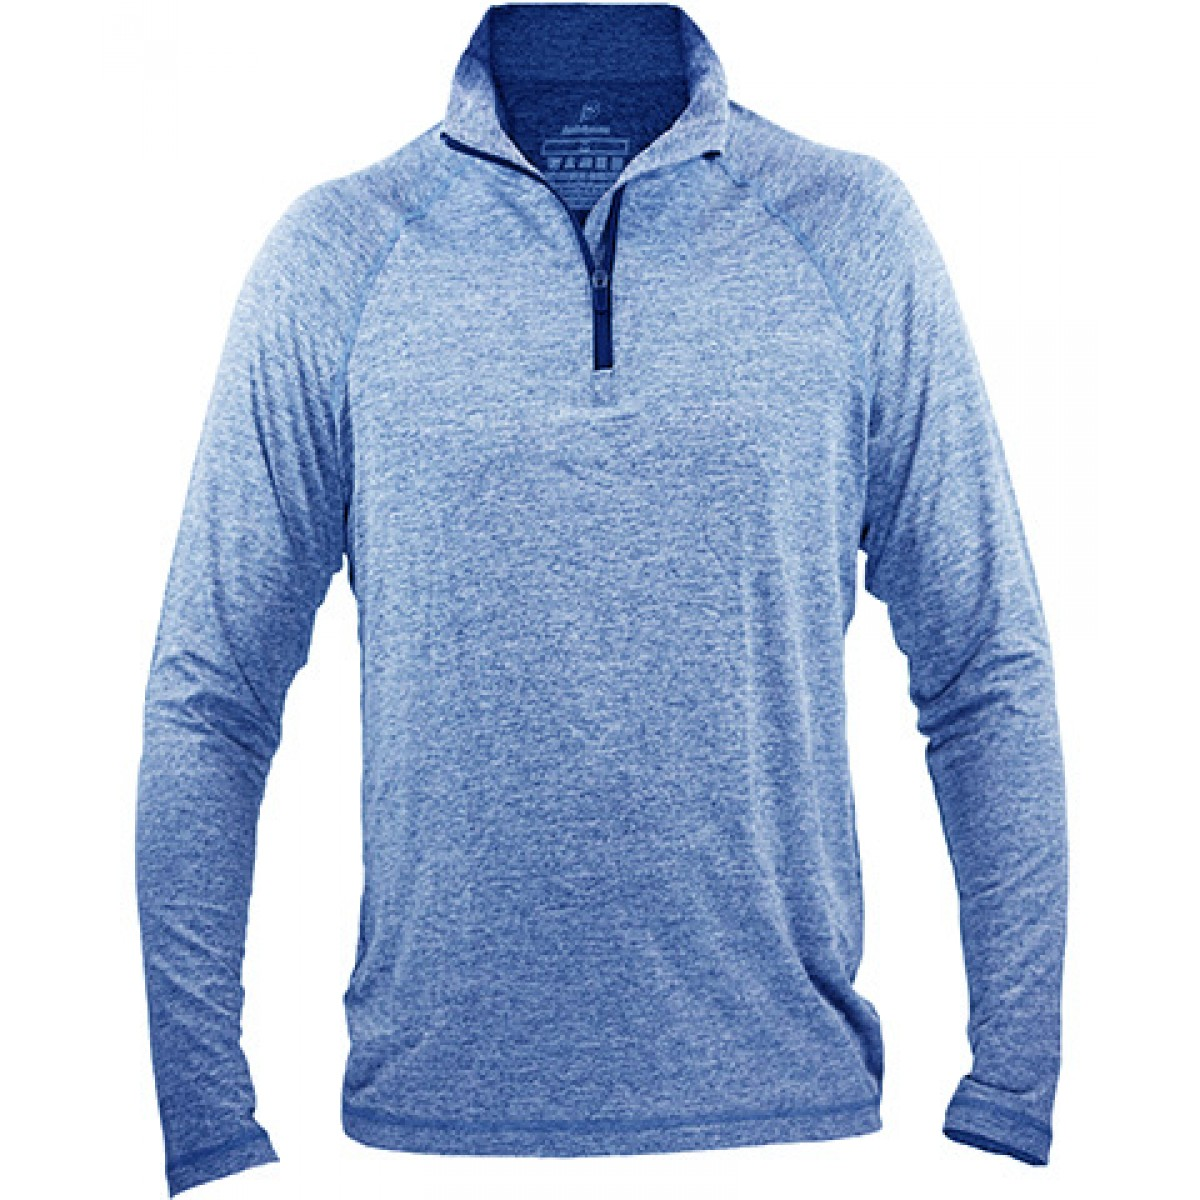 Fine Designs Blend 1/4-Zip Pullover-Blue-XS